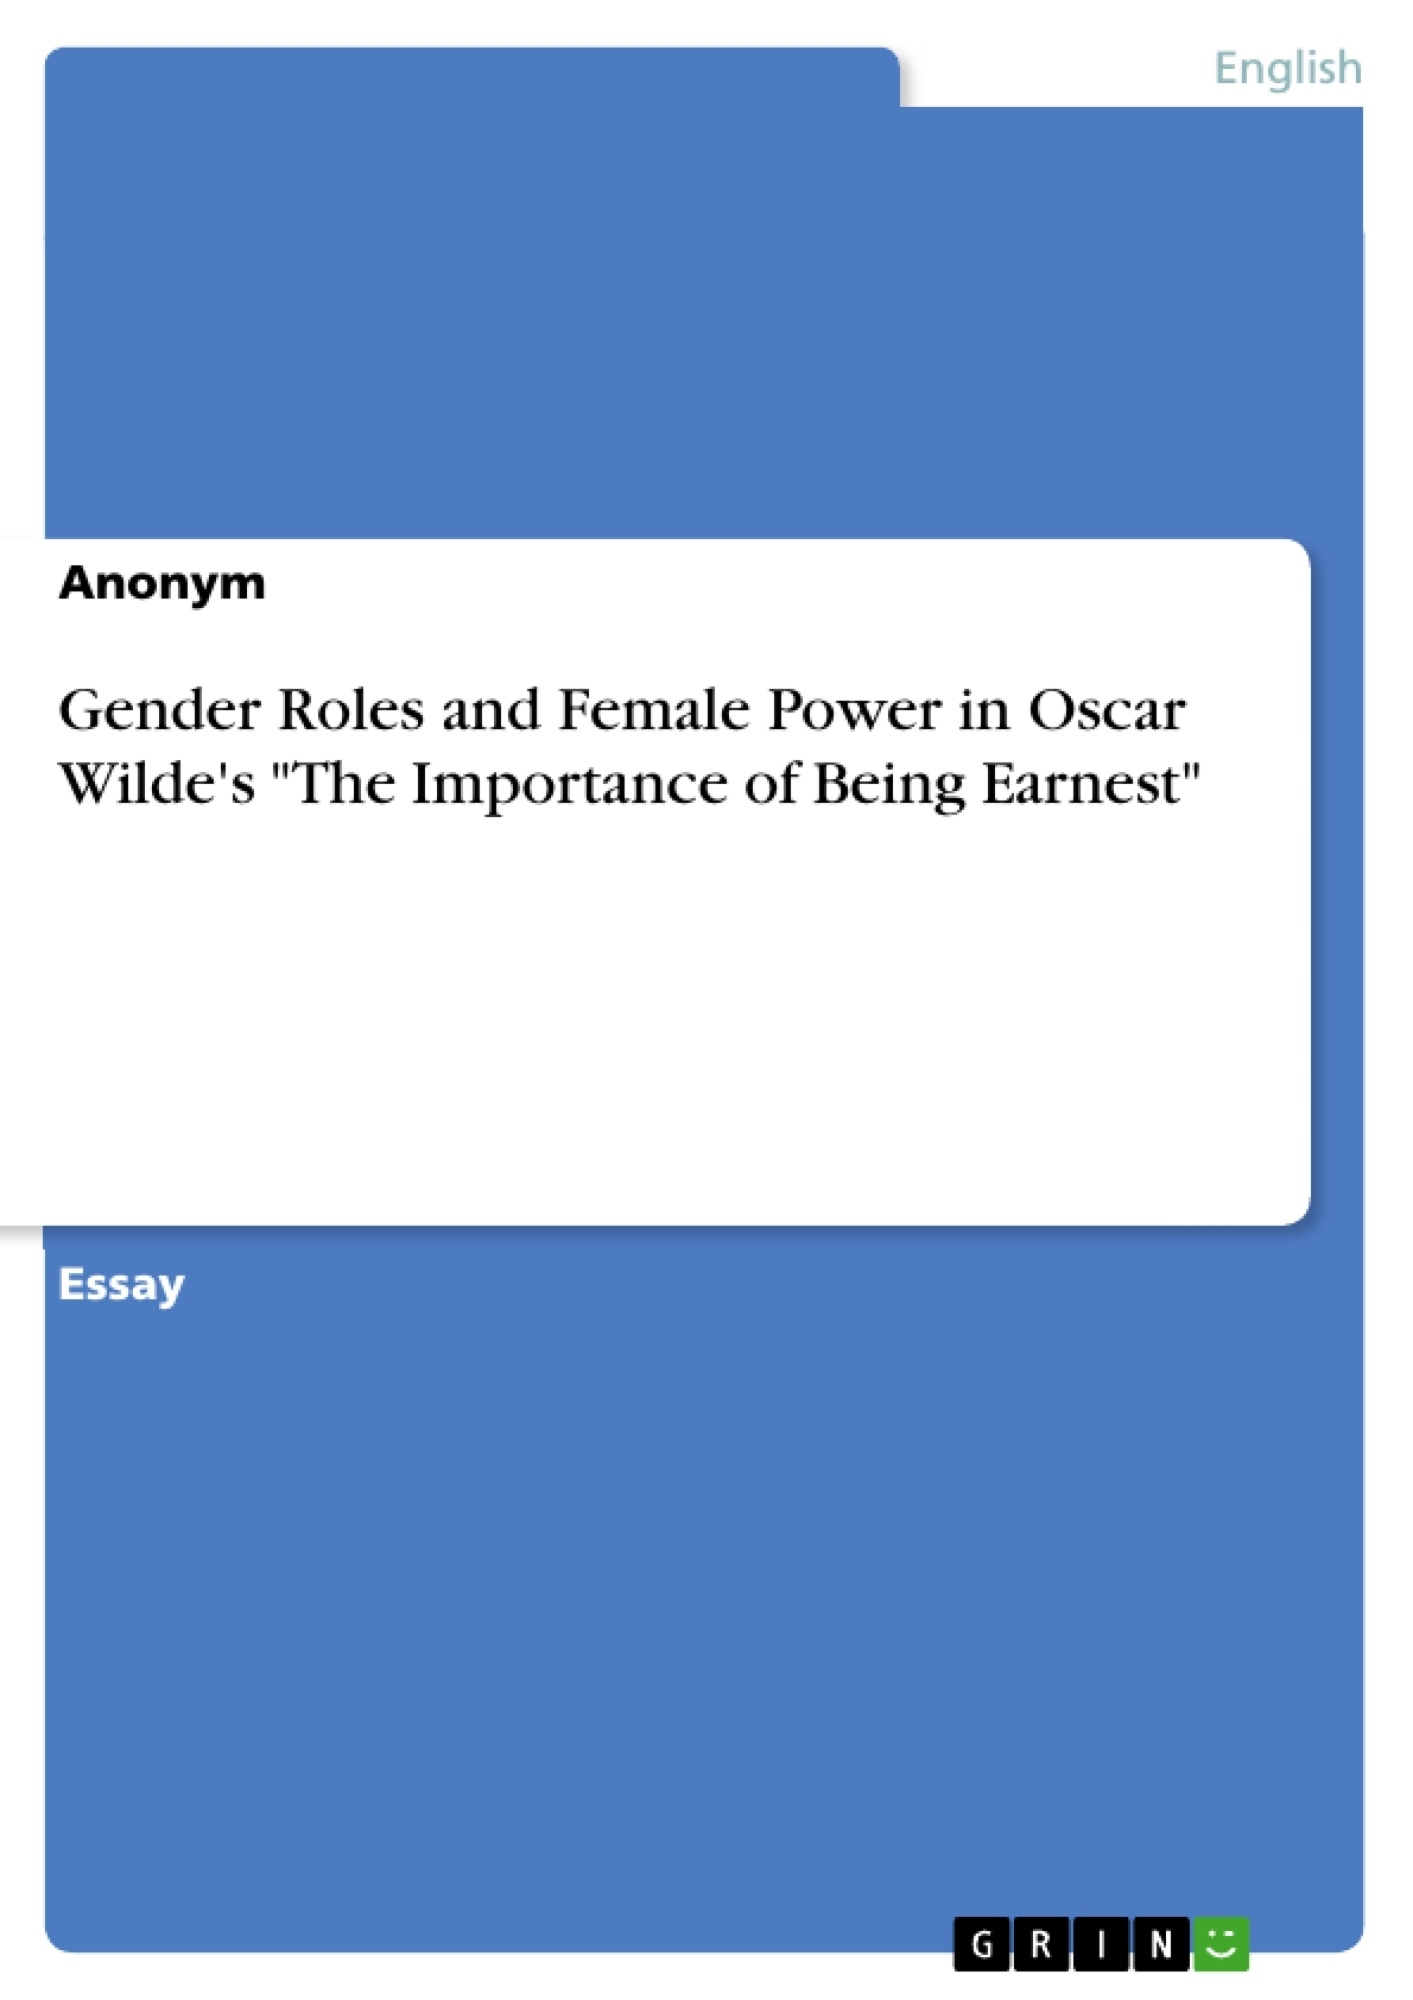 """Title: Gender Roles and Female Power in Oscar Wilde's """"The Importance of Being Earnest"""""""